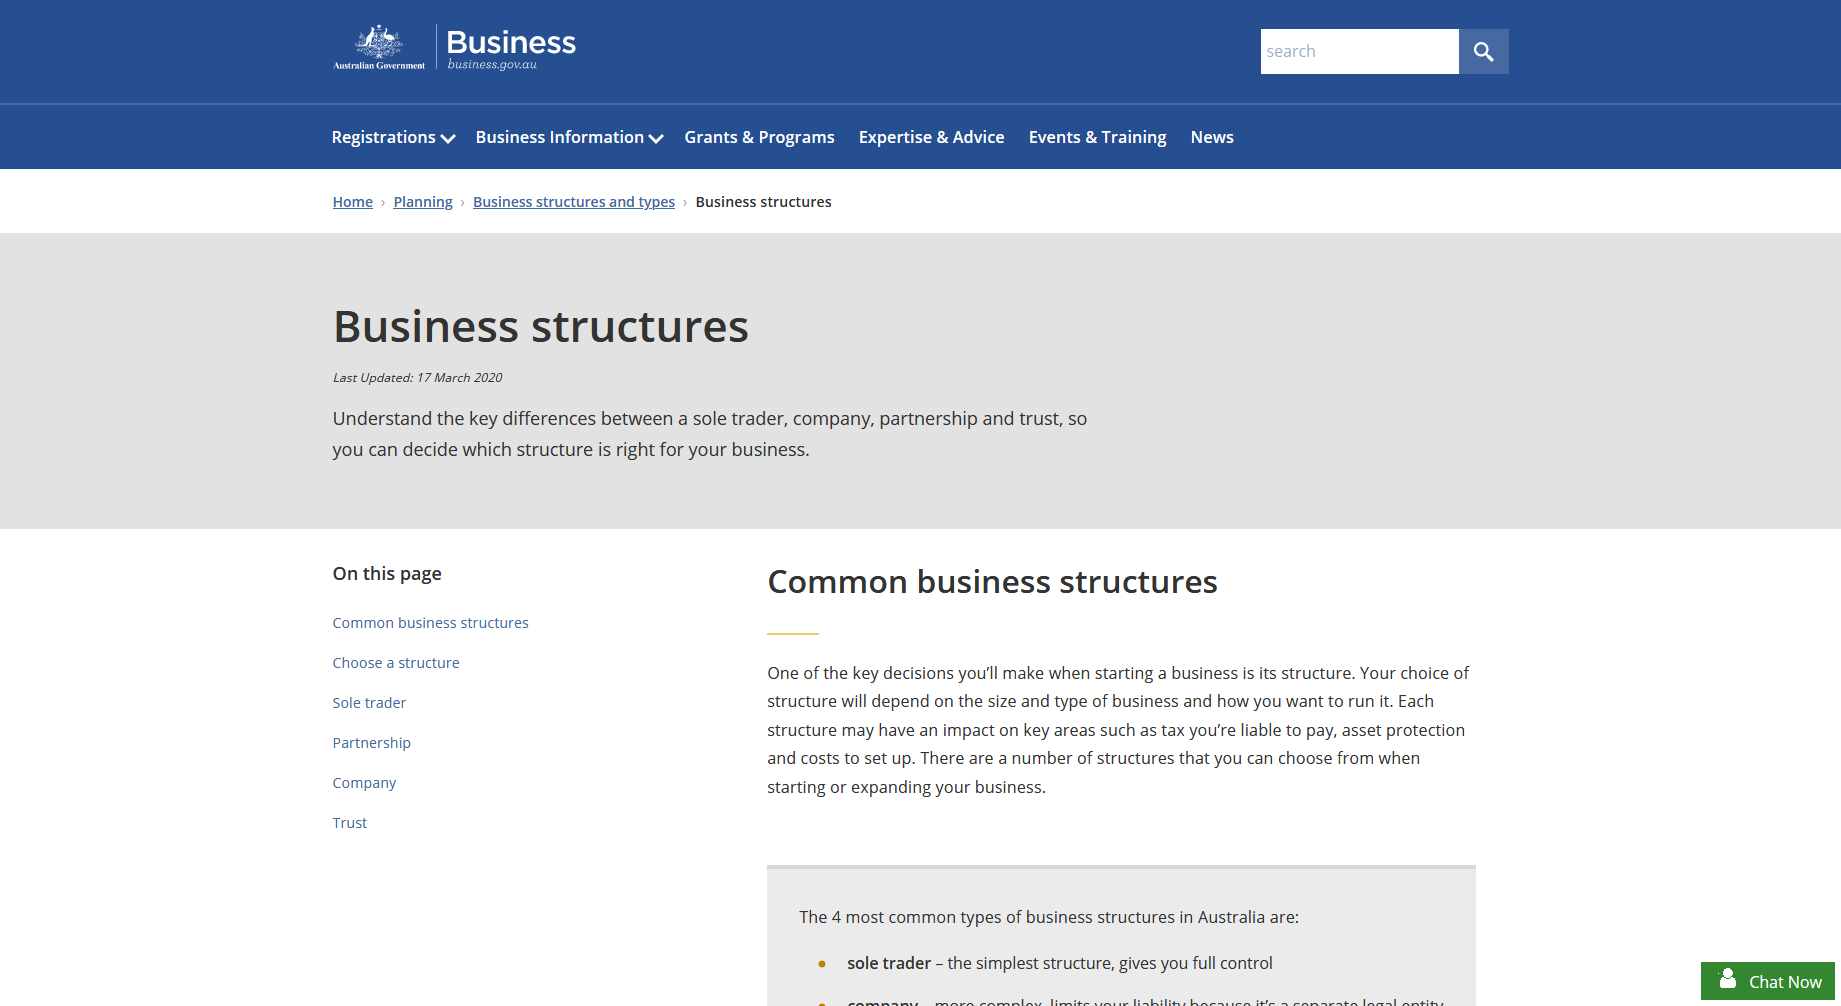 Business Structures in Australia